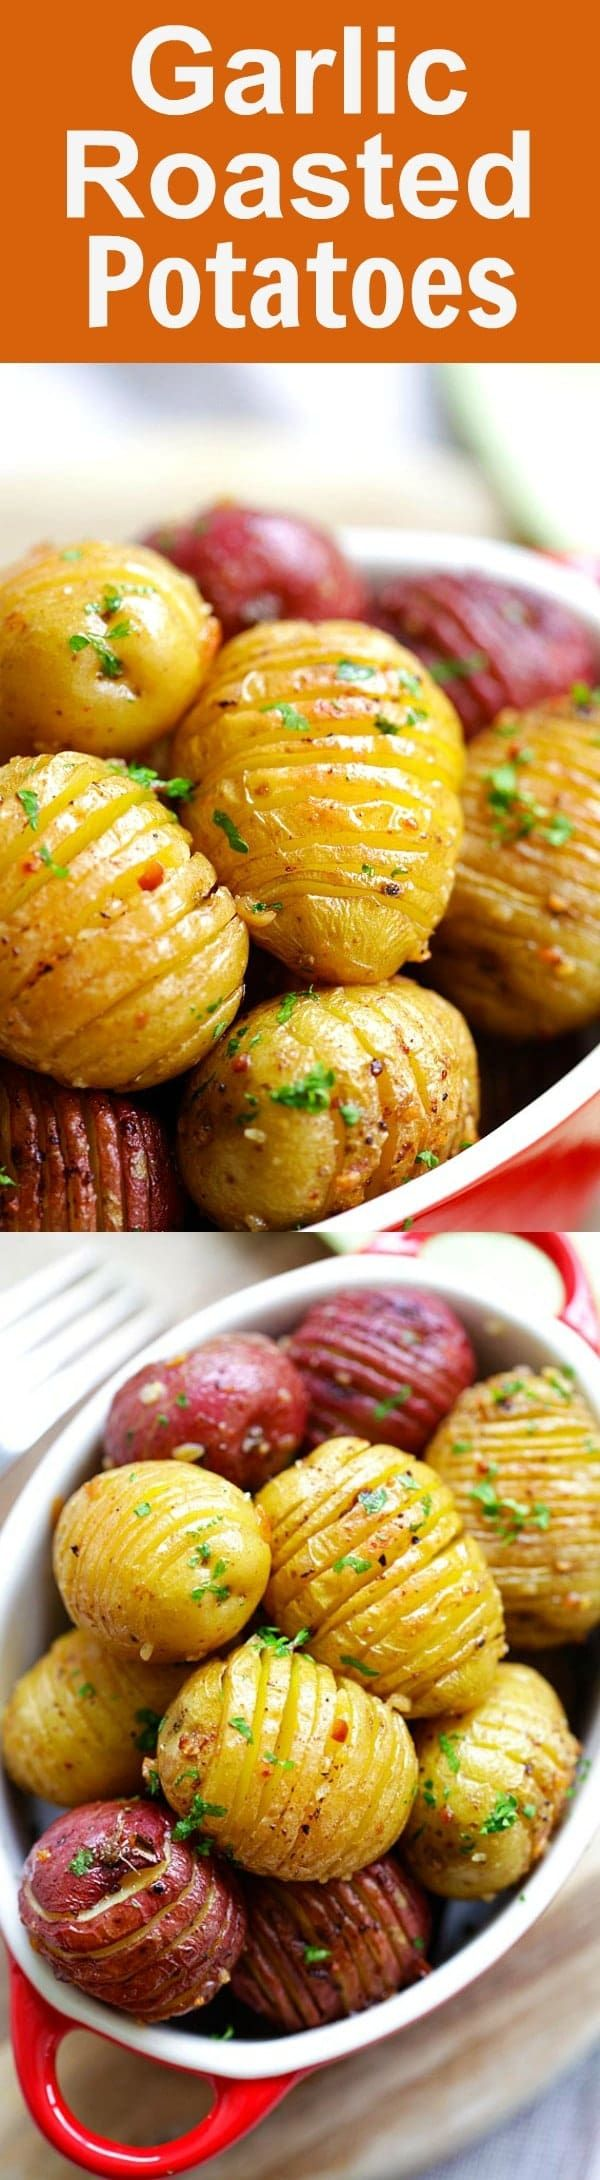 how to cook roast potatoes with oil